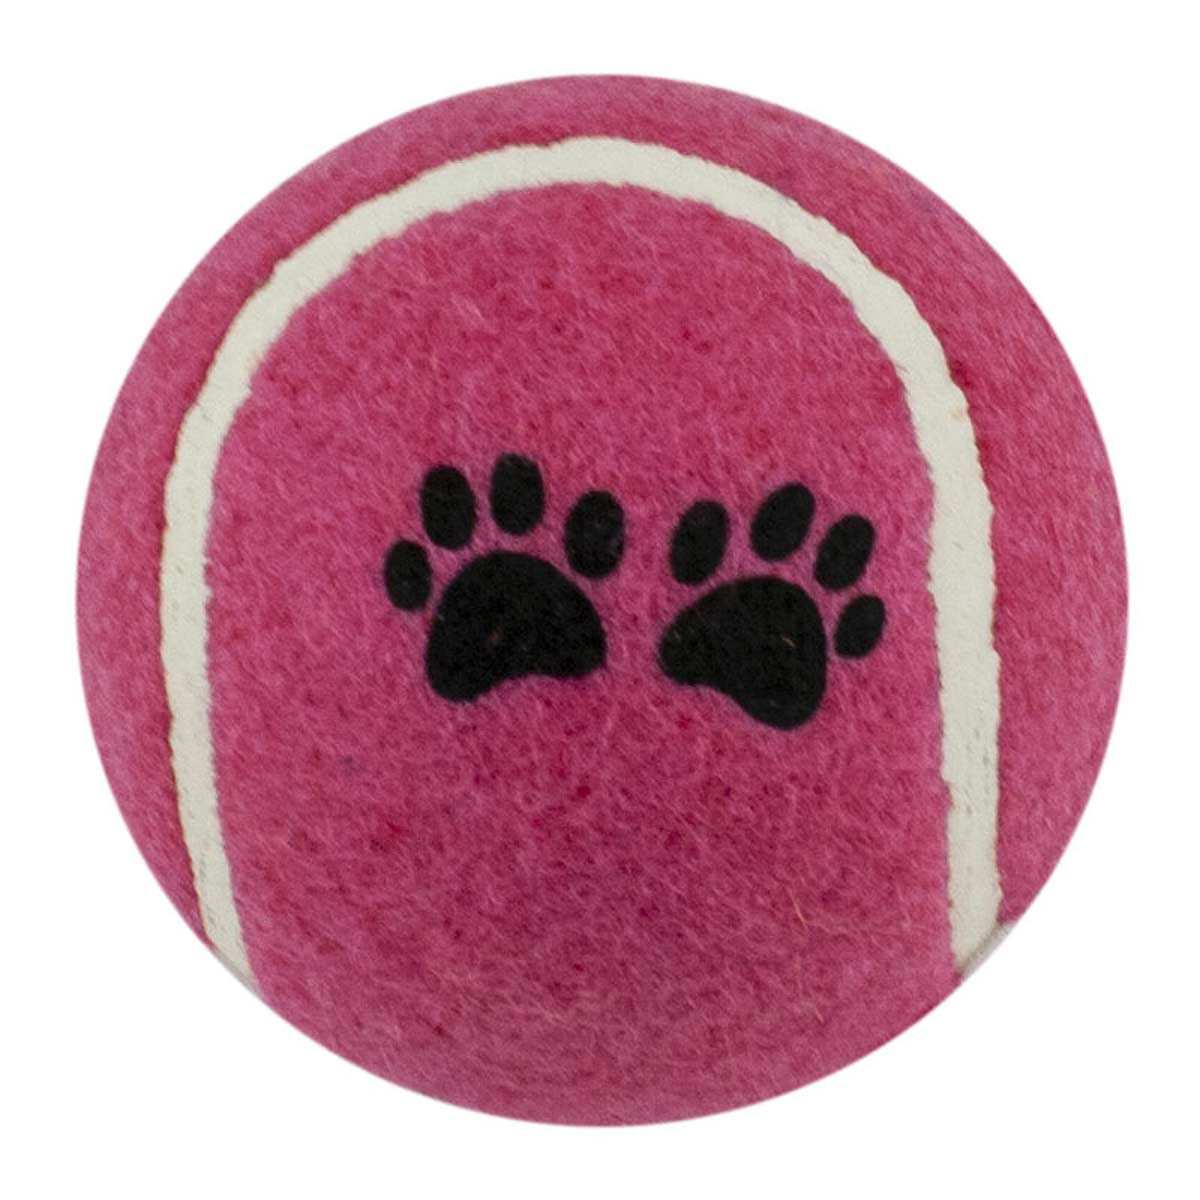 Pink Tennis Ball 2.5 inch Dog Toy